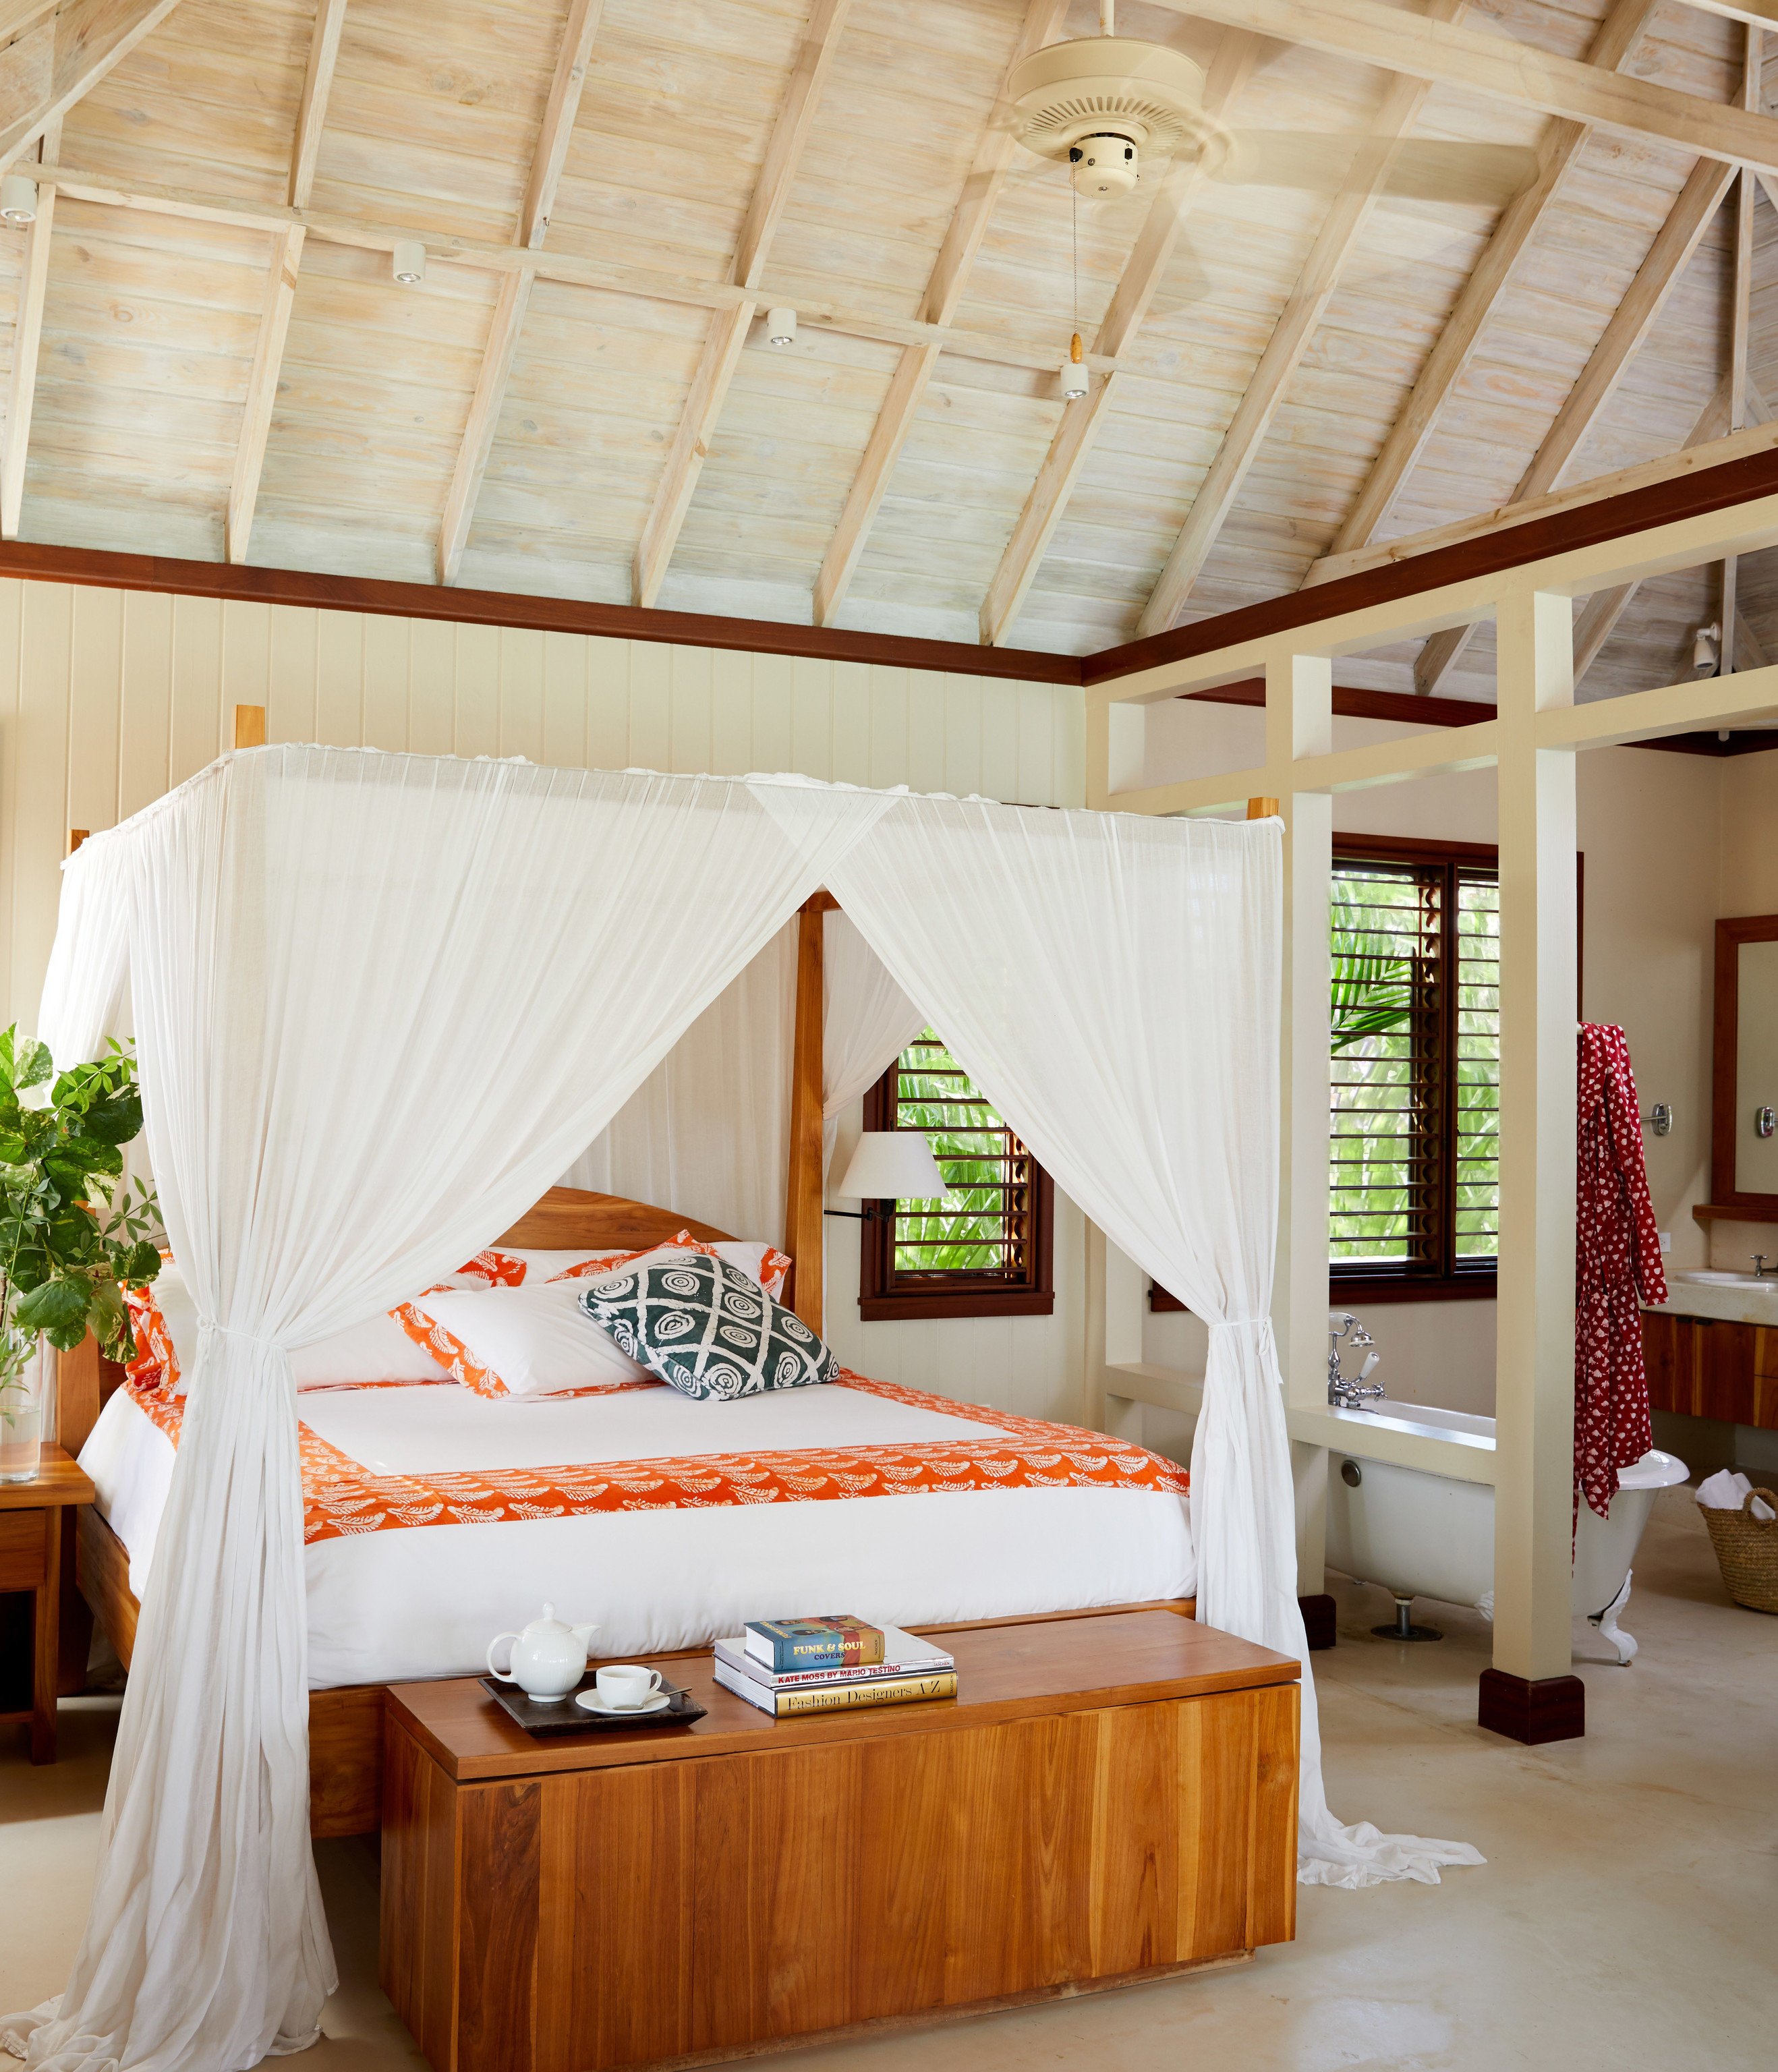 Trip Ideas Bedroom bed frame home four poster Suite living room house daylighting window treatment flooring tent interior designer